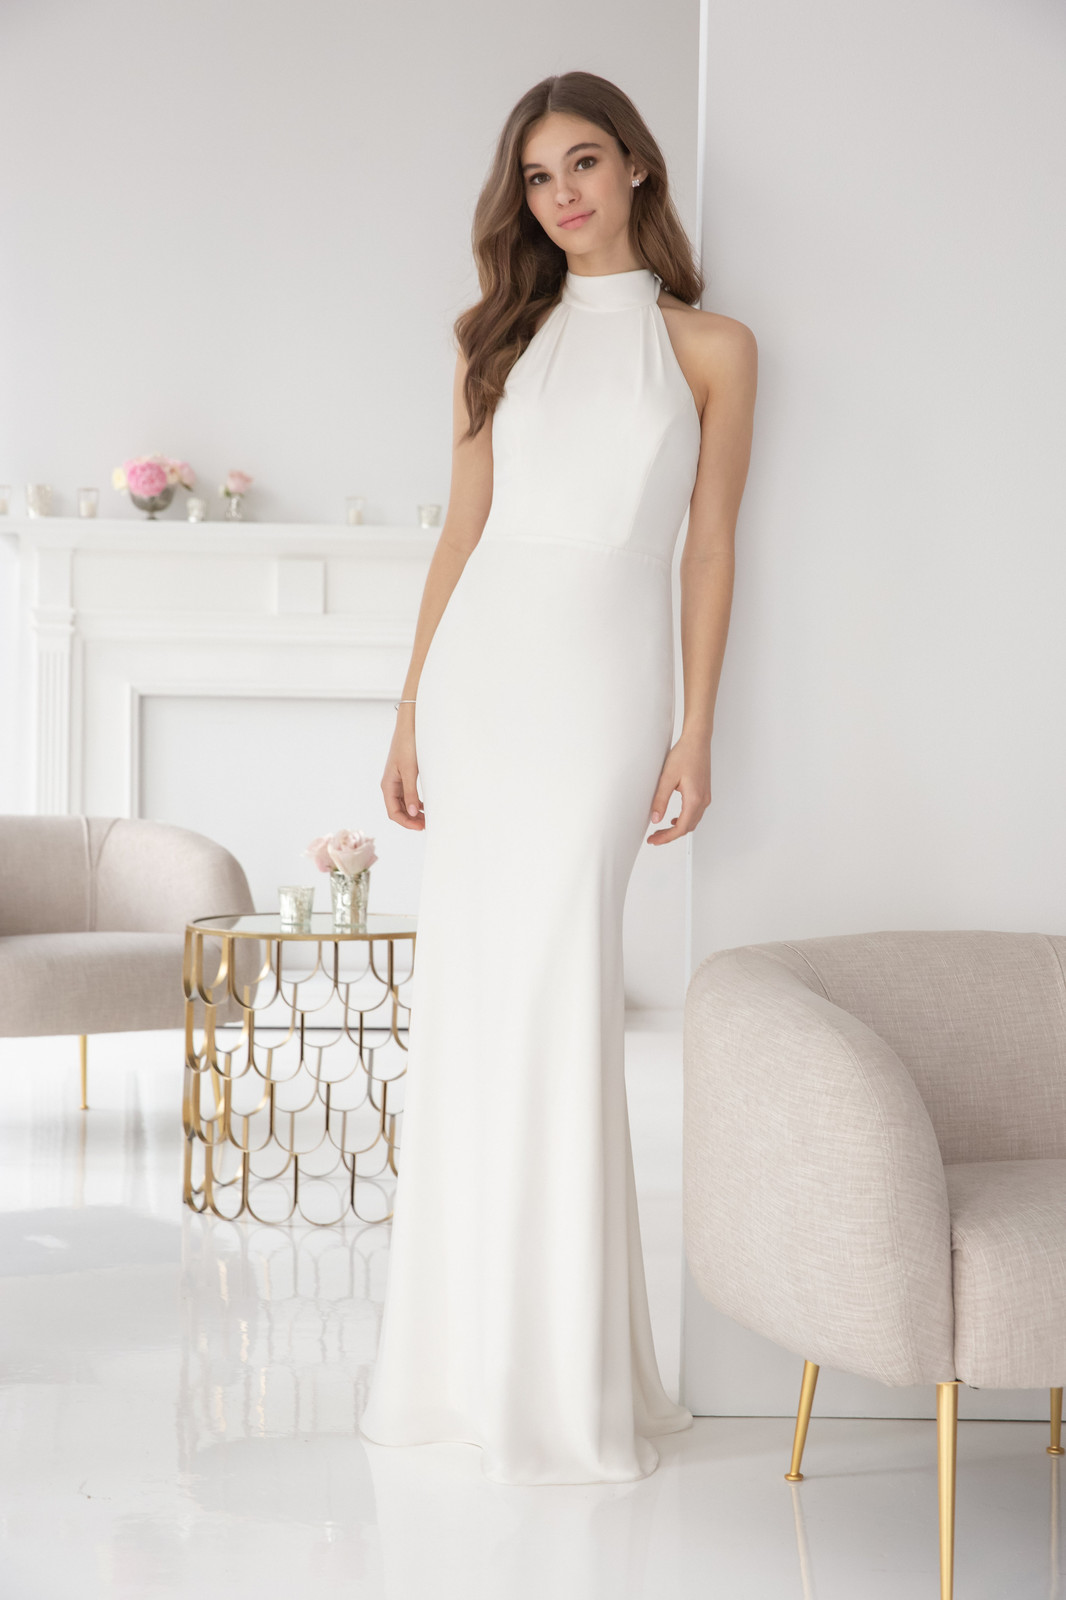 Wedding Dress Outlet Stores Orlando Ficts,Average Cost Of Wedding Dress Canada